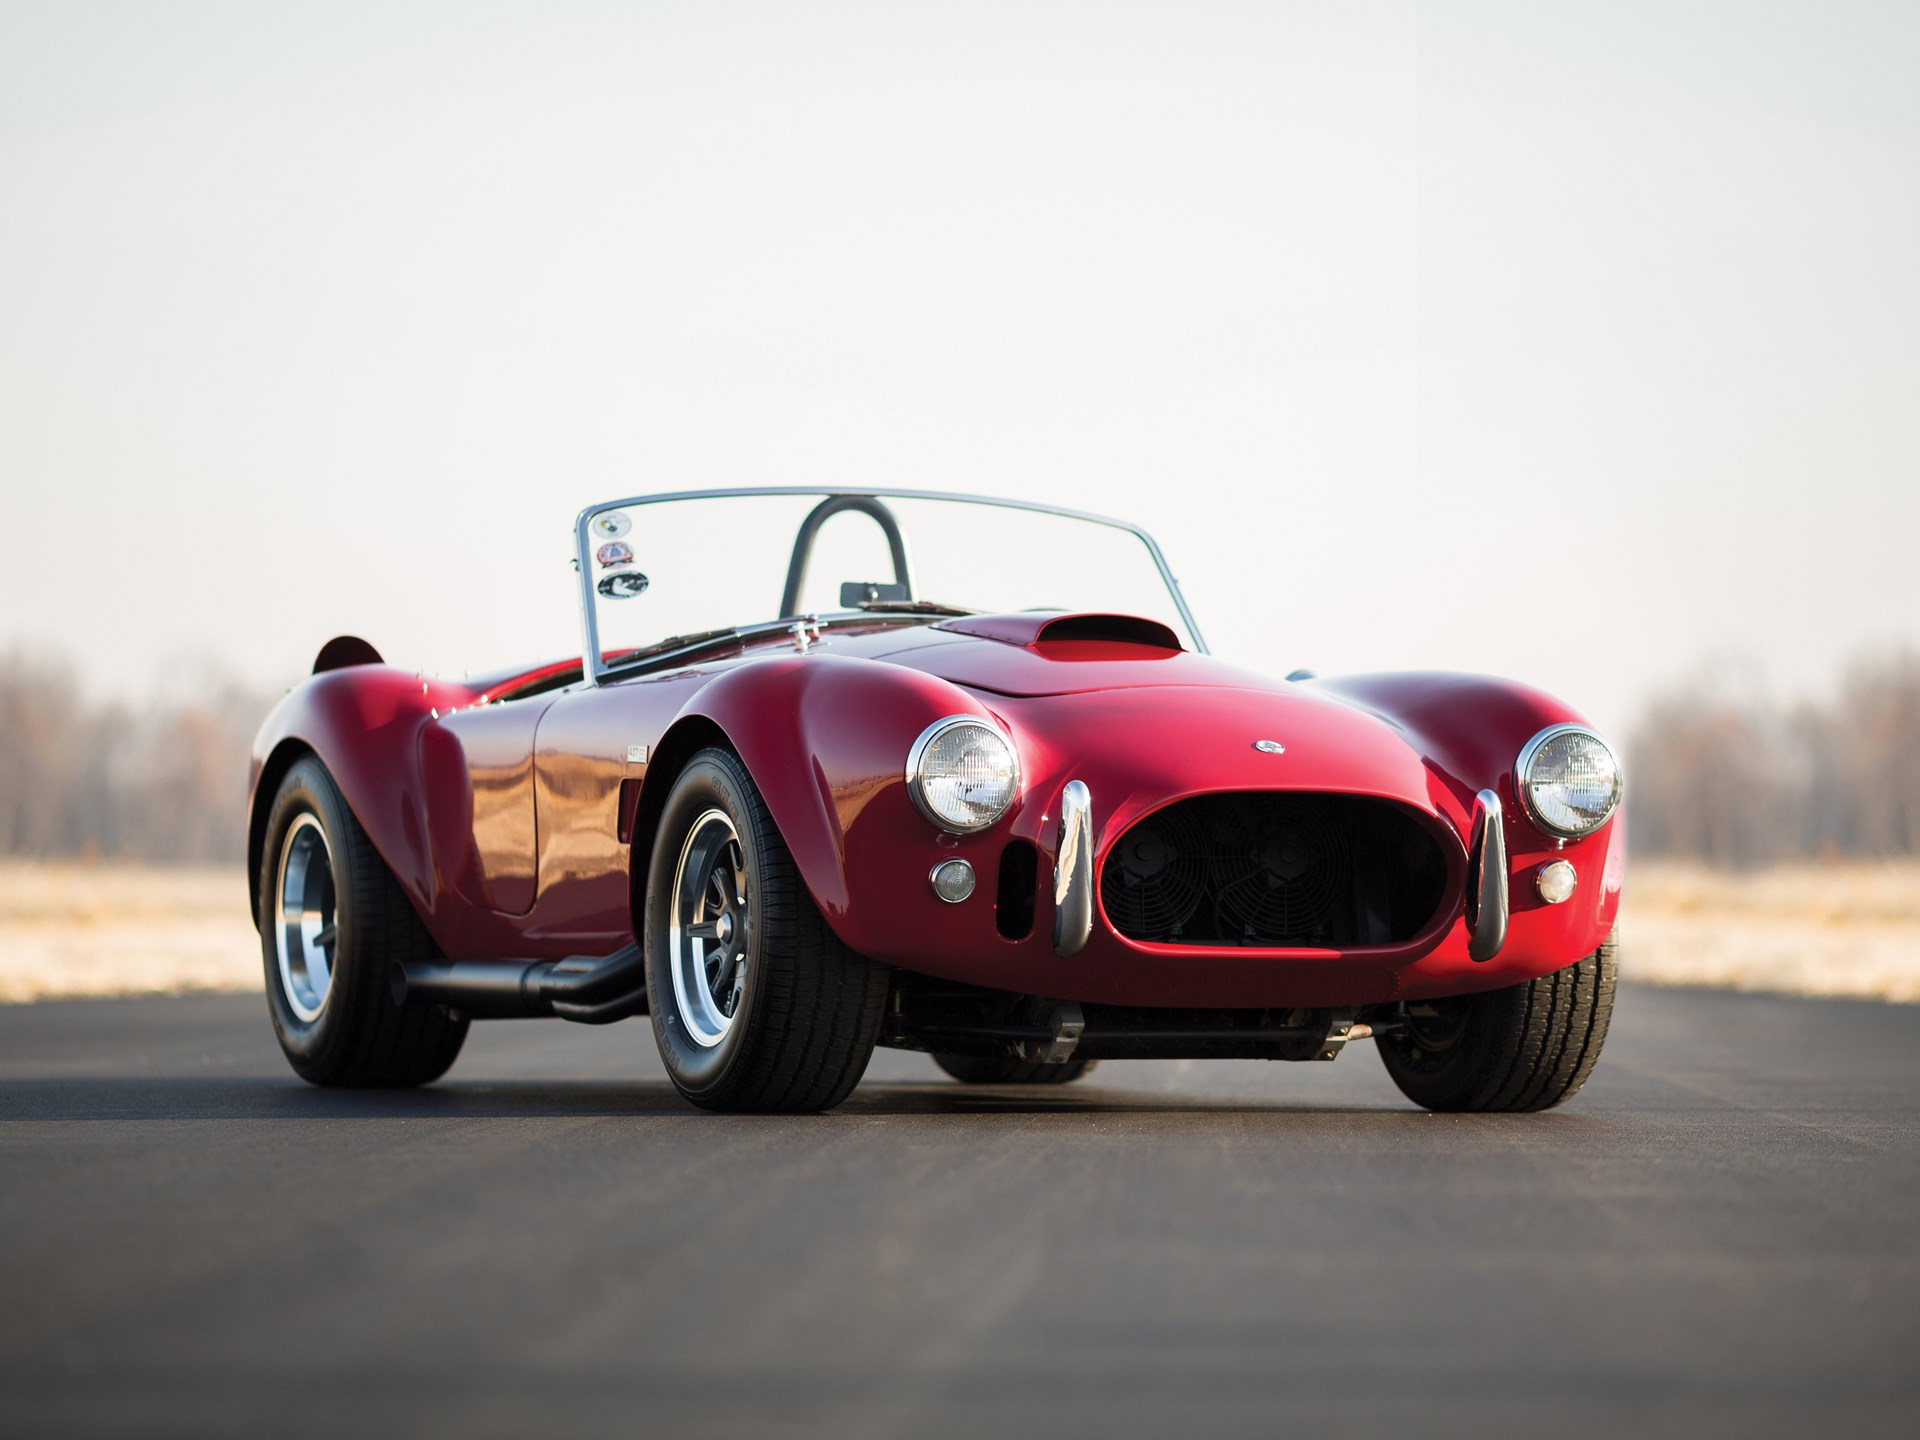 1966 Shelby 427 Cobra front 3/4 red